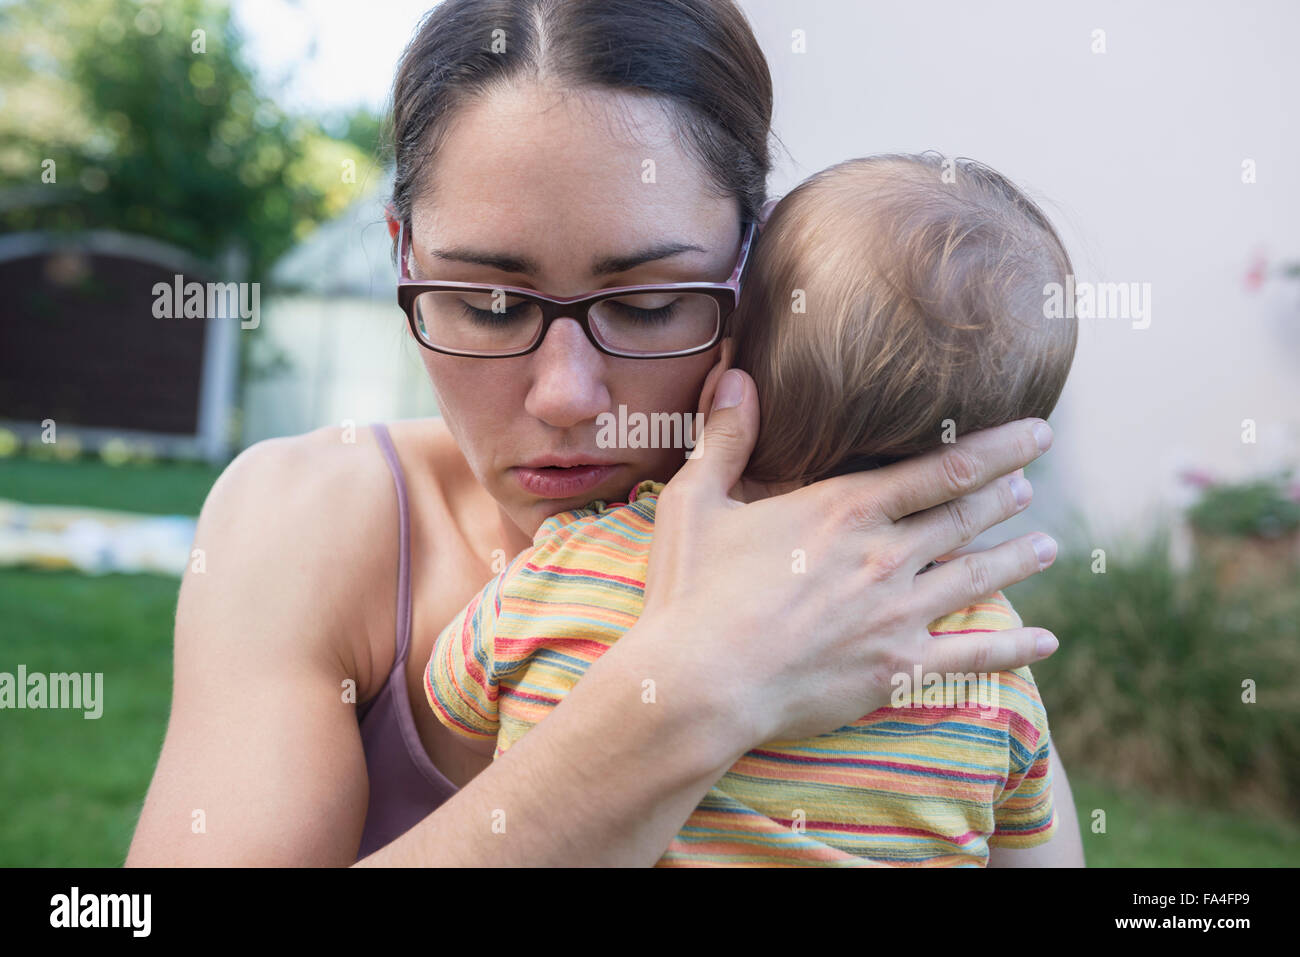 Mother comfort her baby son in a lawn, Munich, Bavaria, Germany Stock Photo